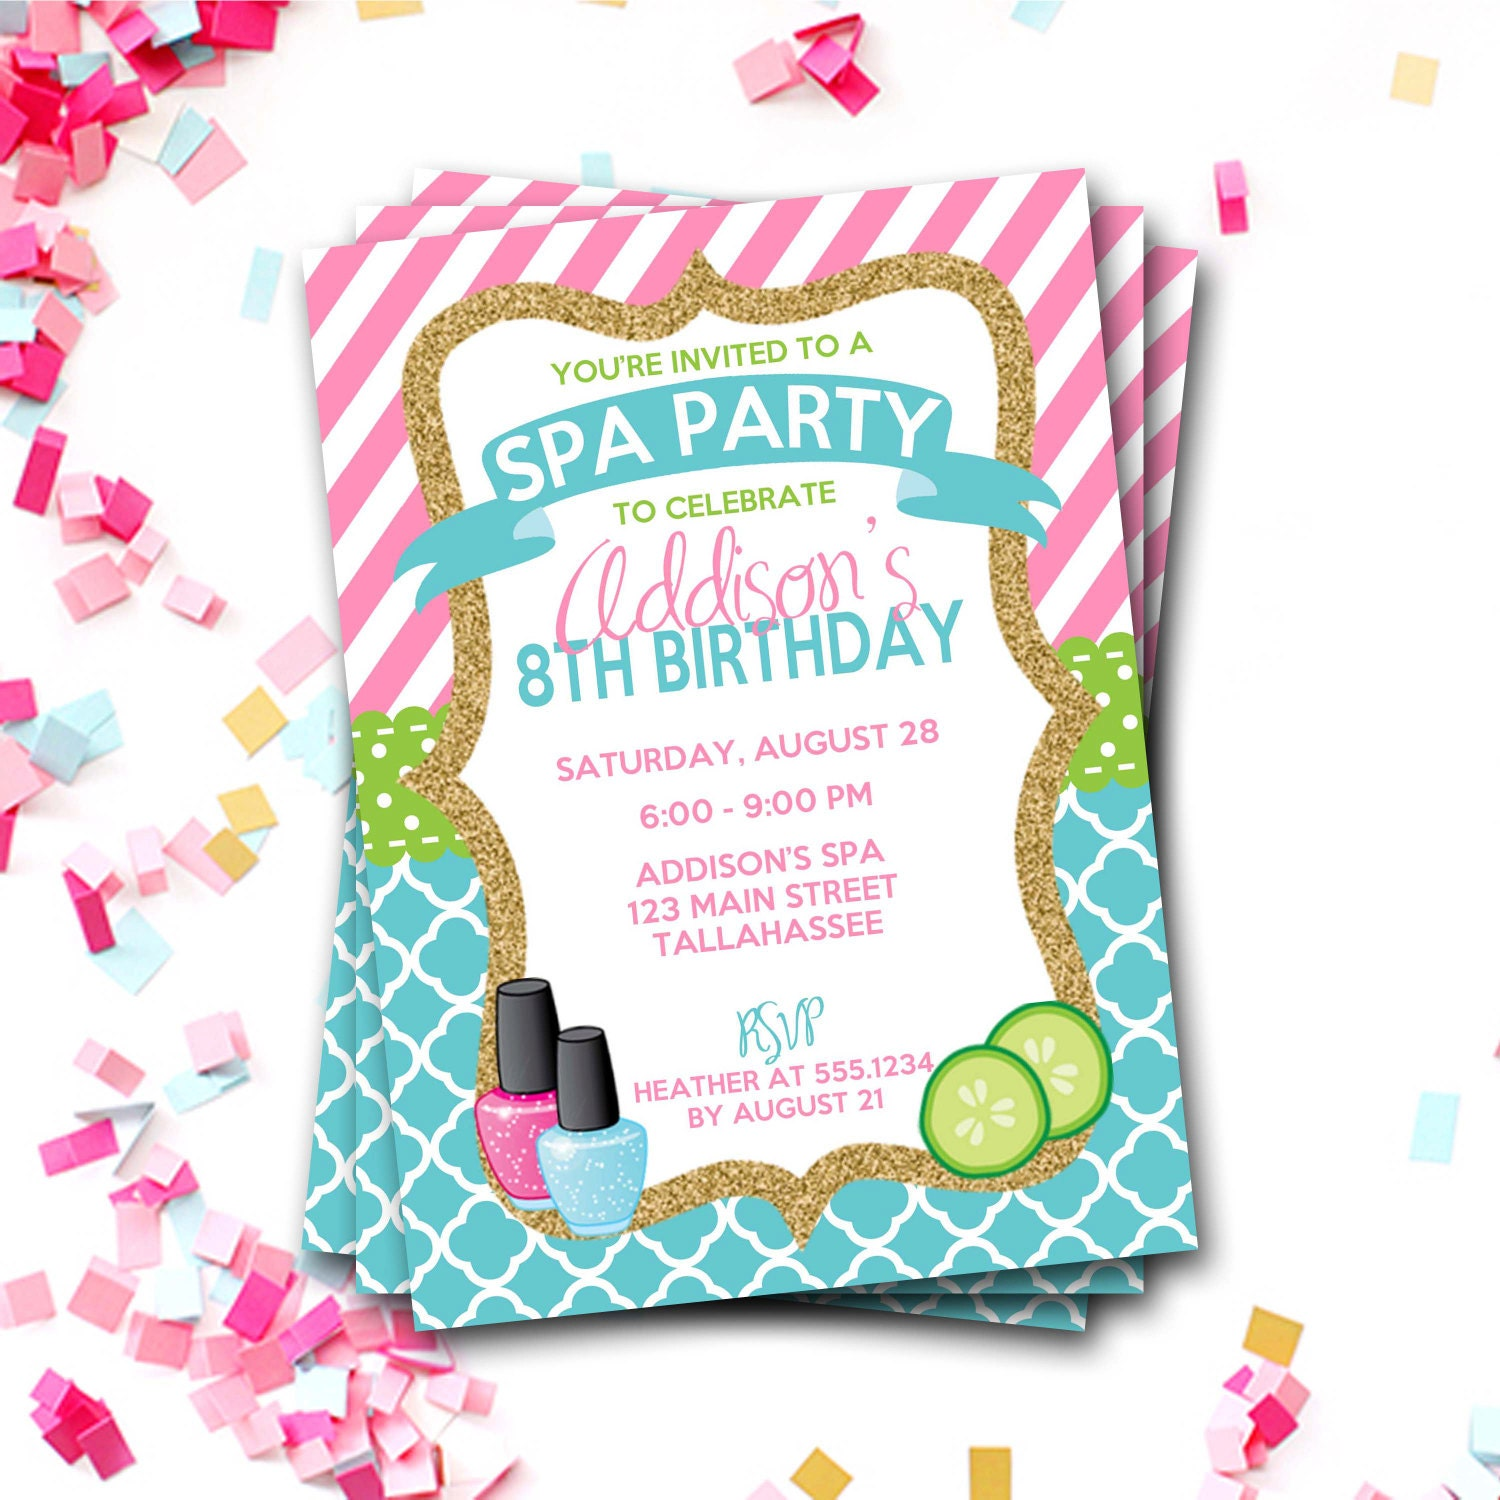 Spa Birthday Invitation, Spa Party Invitation, Sleepover Birthday ...